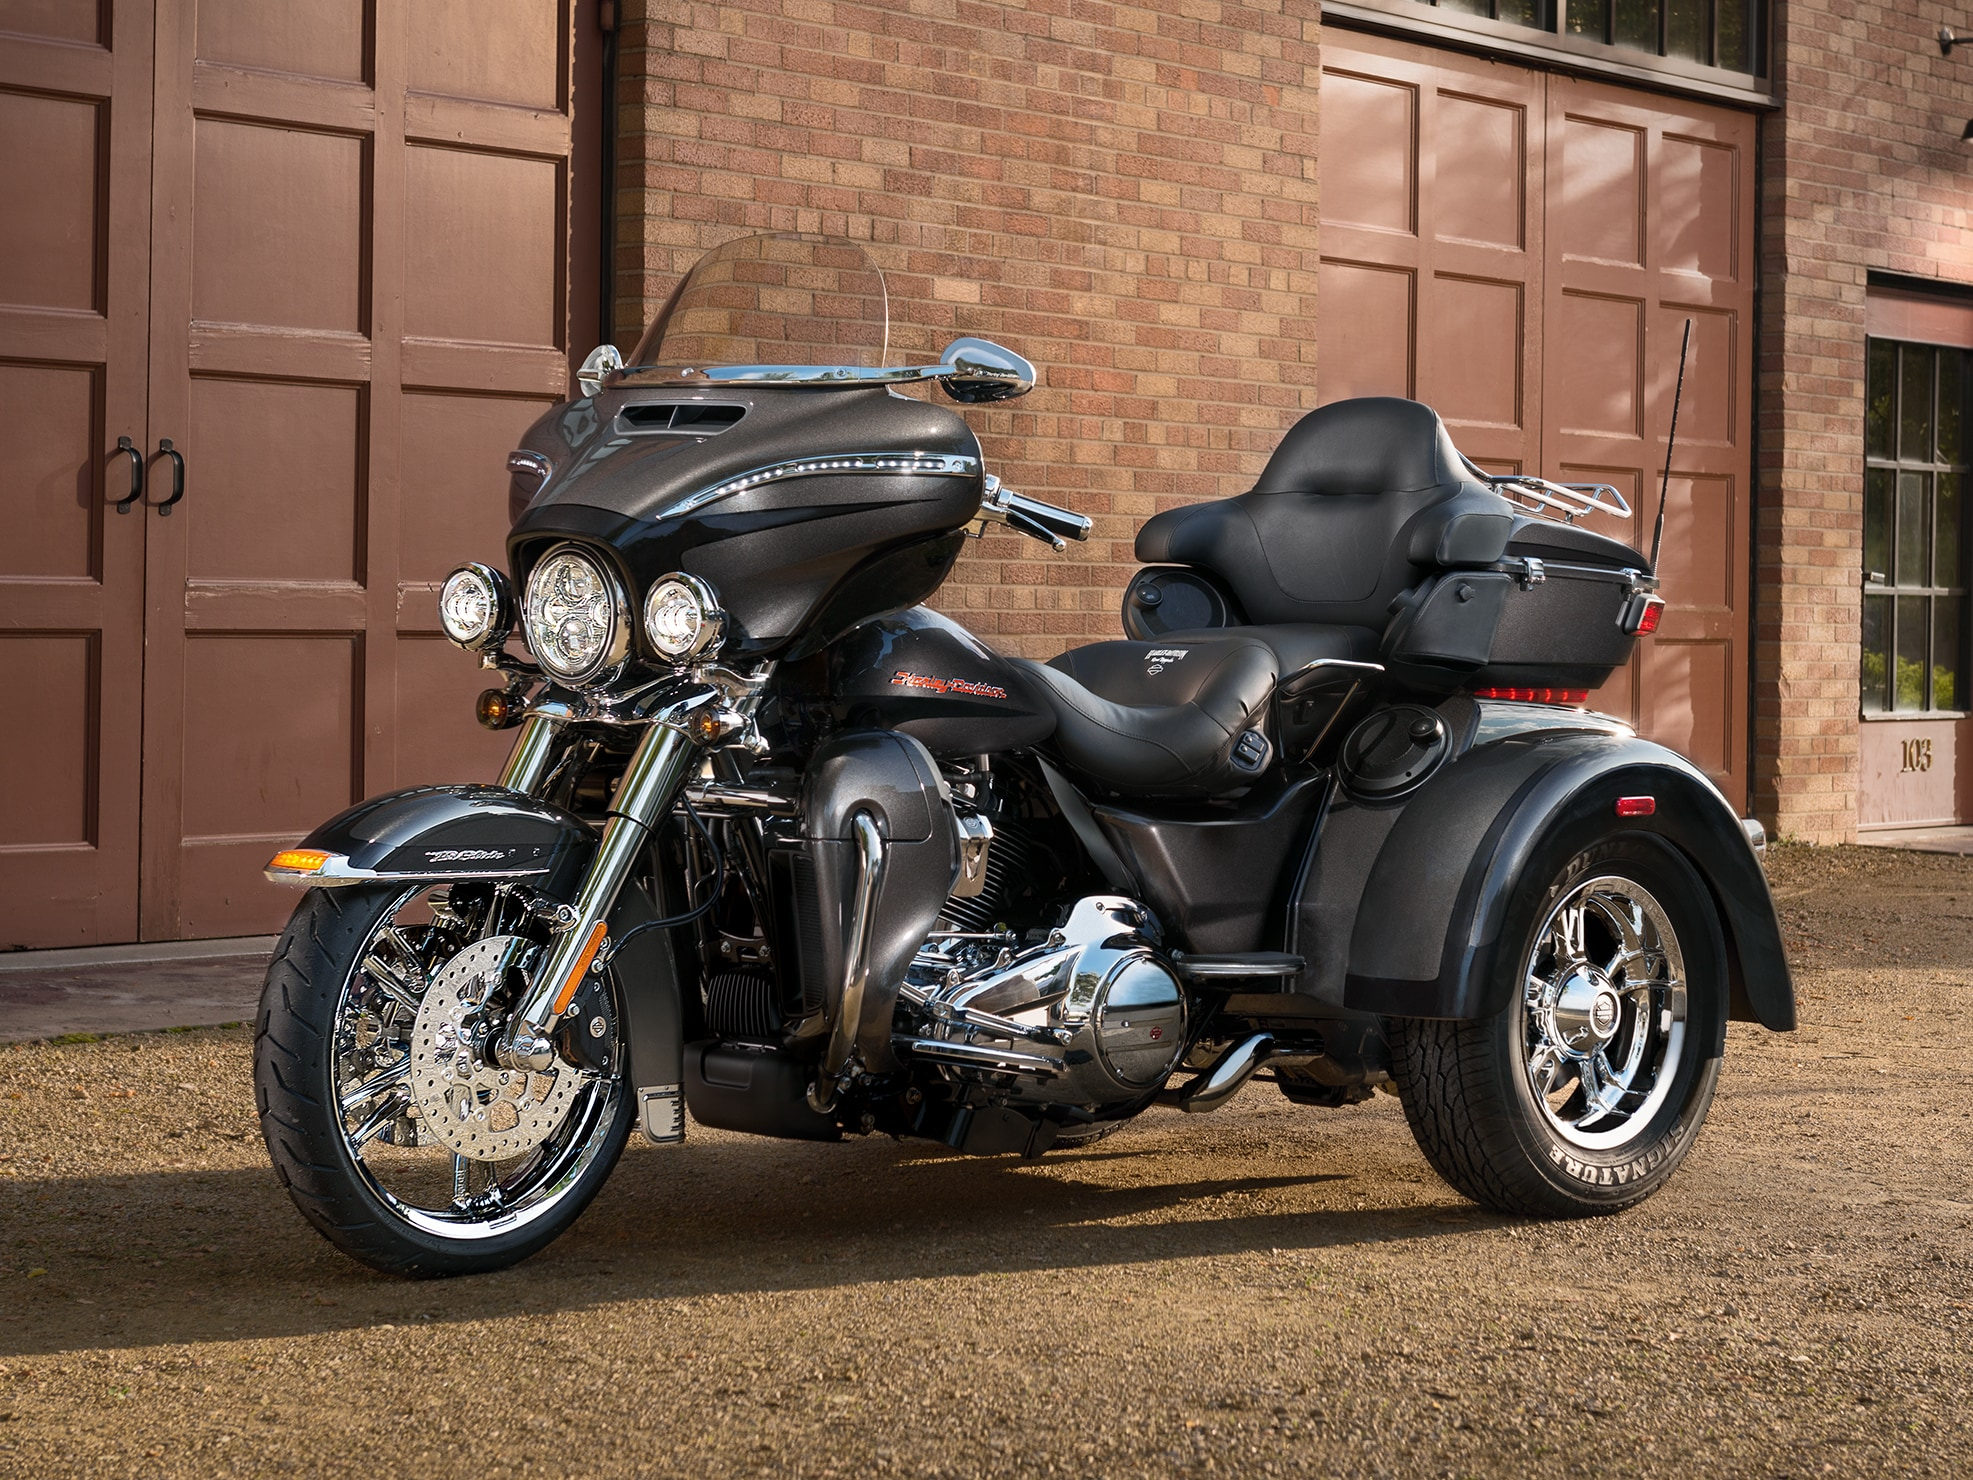 2019 trike motorcycles harley davidson australia new zealand. Black Bedroom Furniture Sets. Home Design Ideas